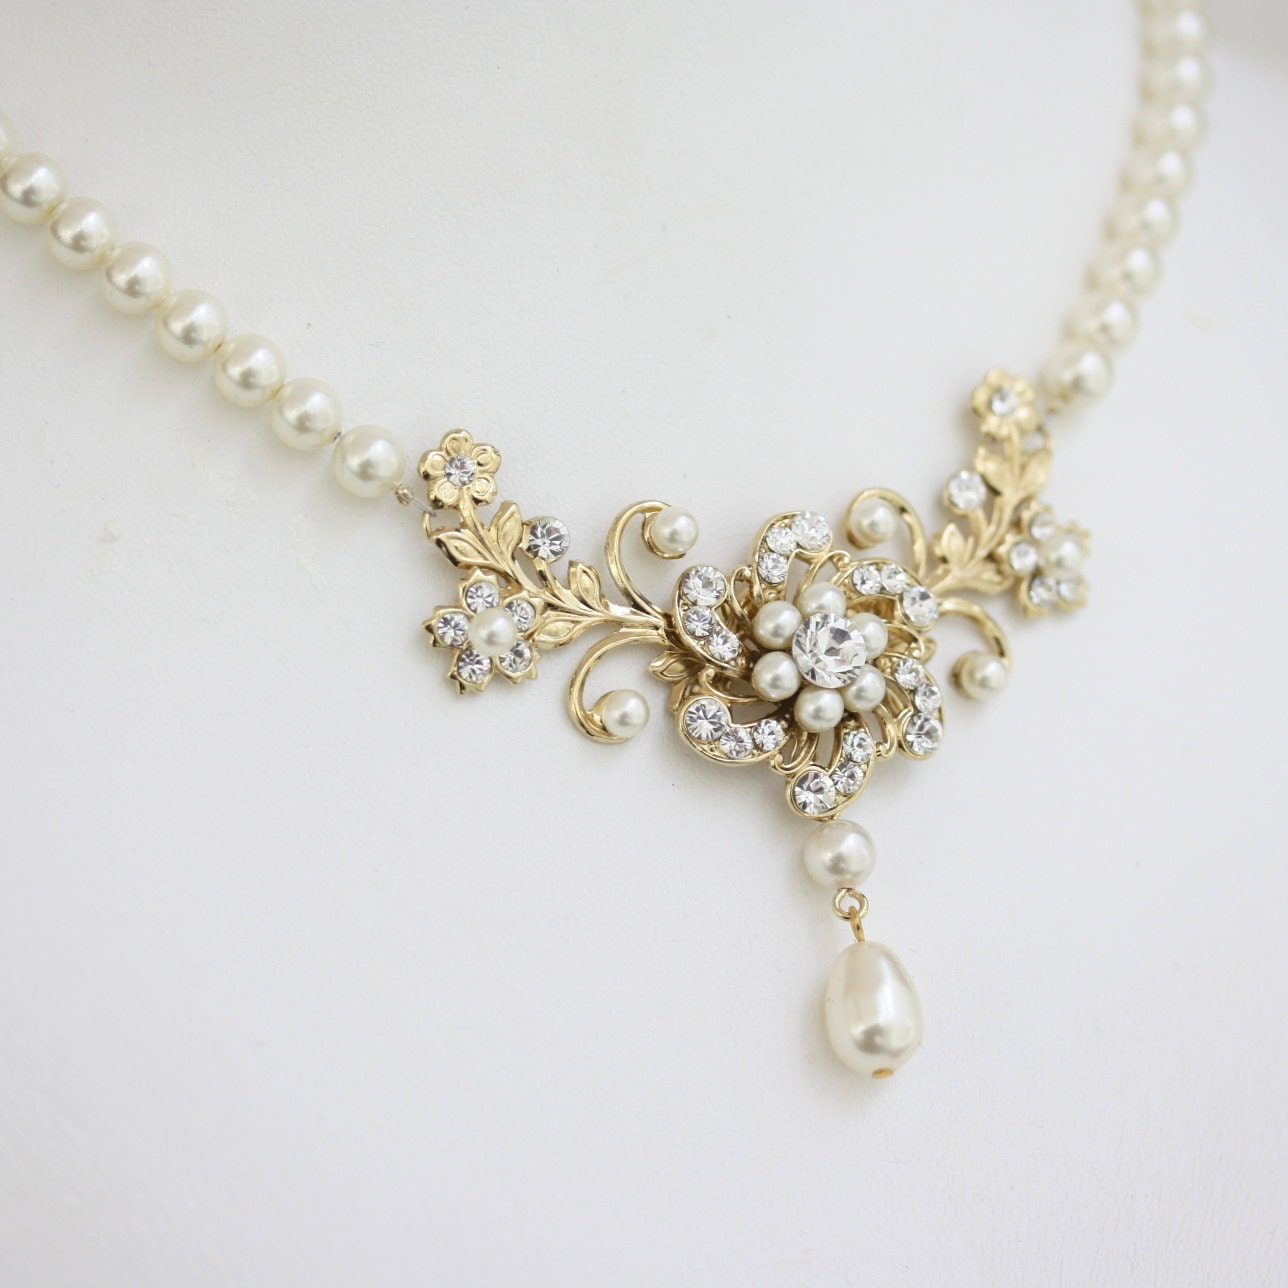 Gold Wedding Necklace Pearl Crystal Bridal Necklace Flower